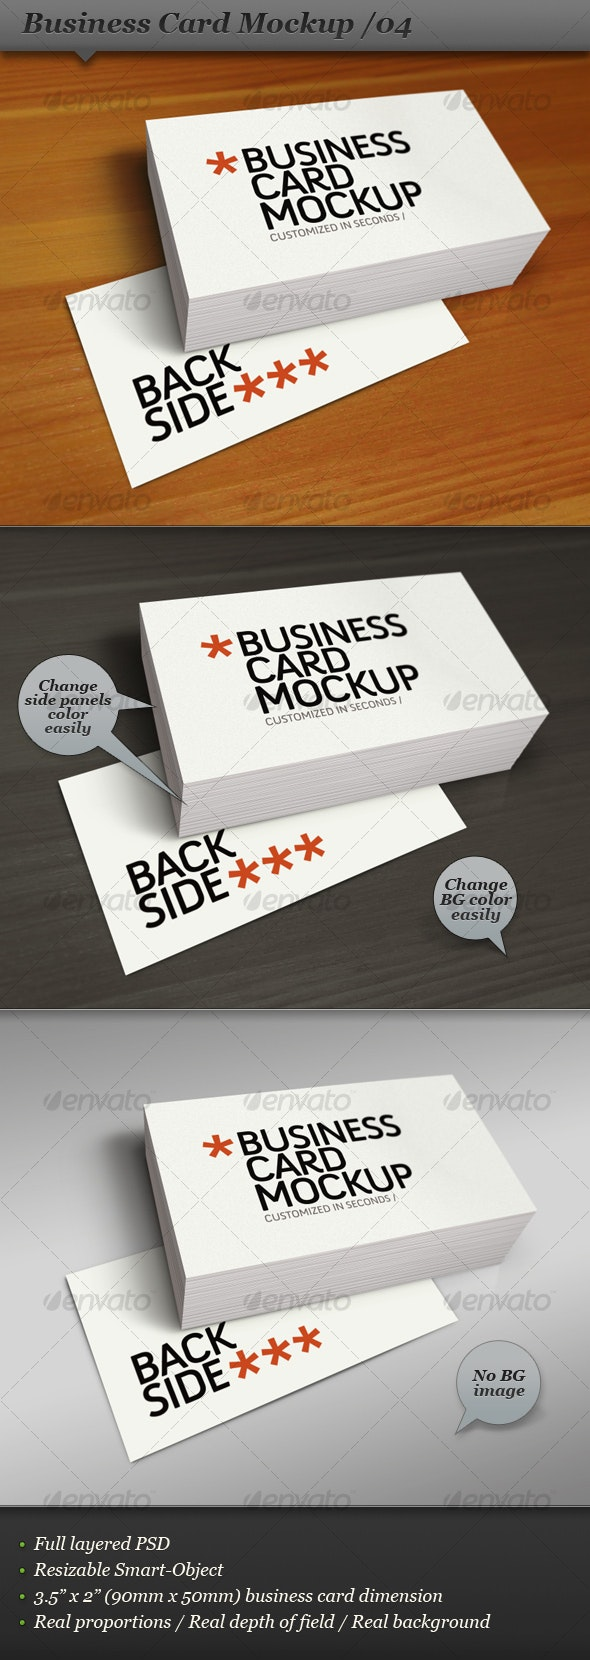 Business Card Mockup Display - Smart Template 04 - Business Cards Print